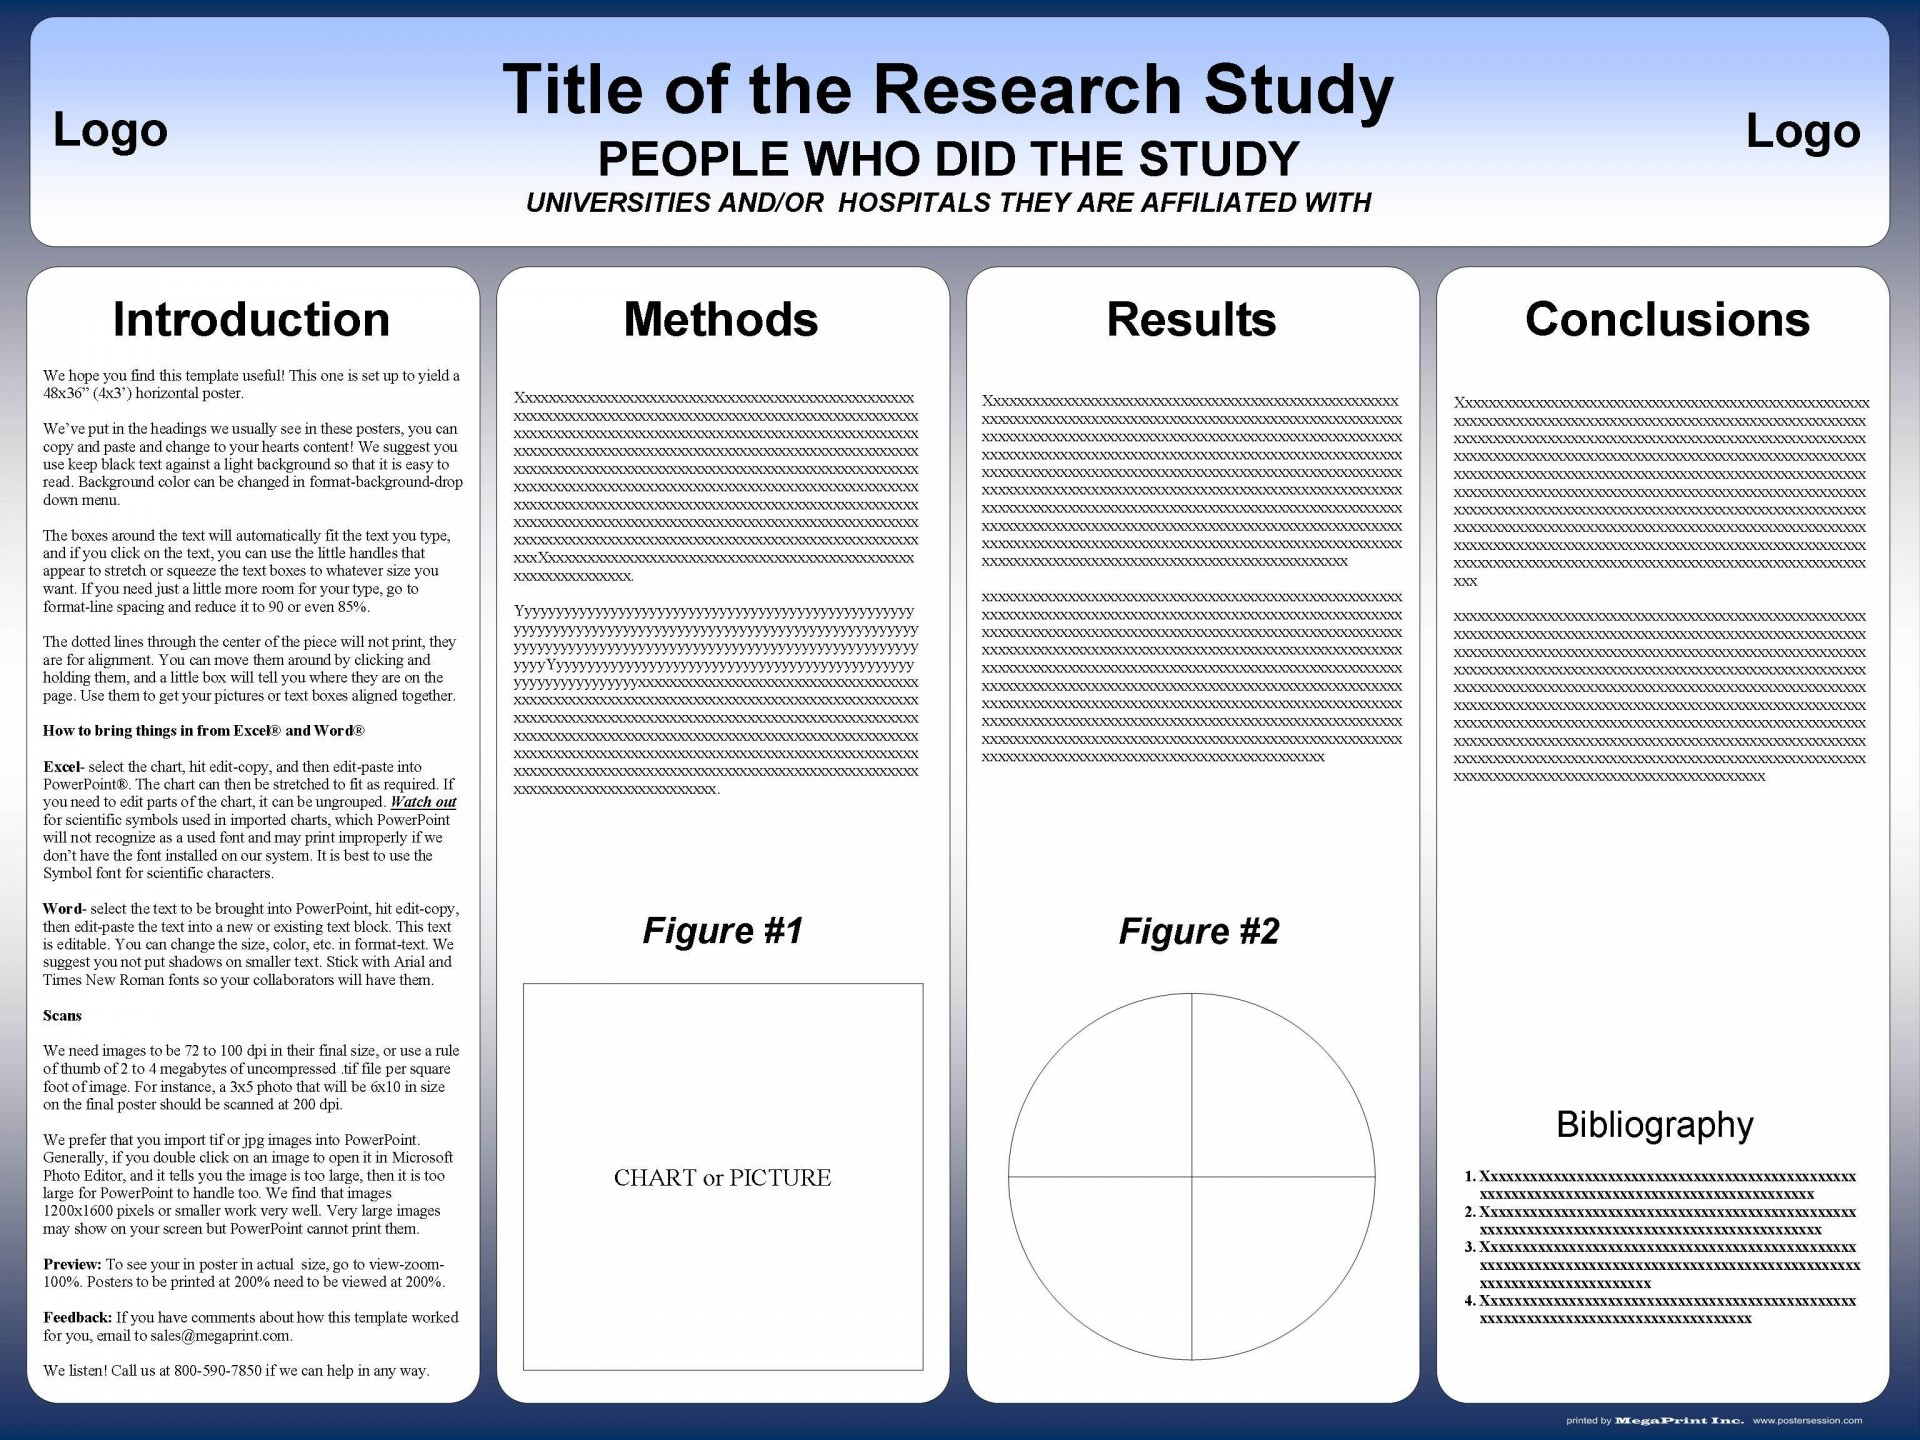 002 Sensational Research Poster Template Powerpoint Design  Scientific Ppt1920